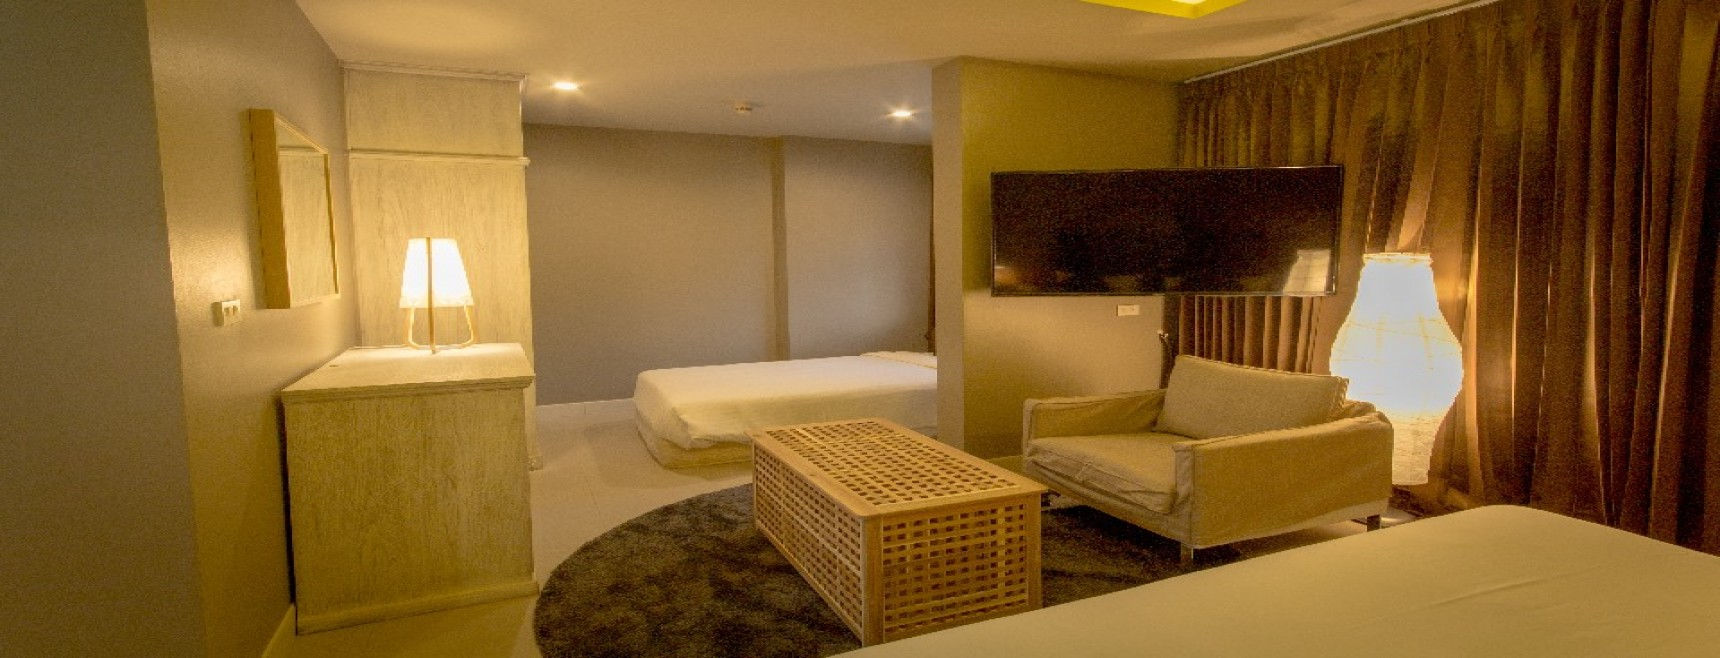 Hotel For Sale Chaweng Beach Koh Samui (Thai-Real.com)